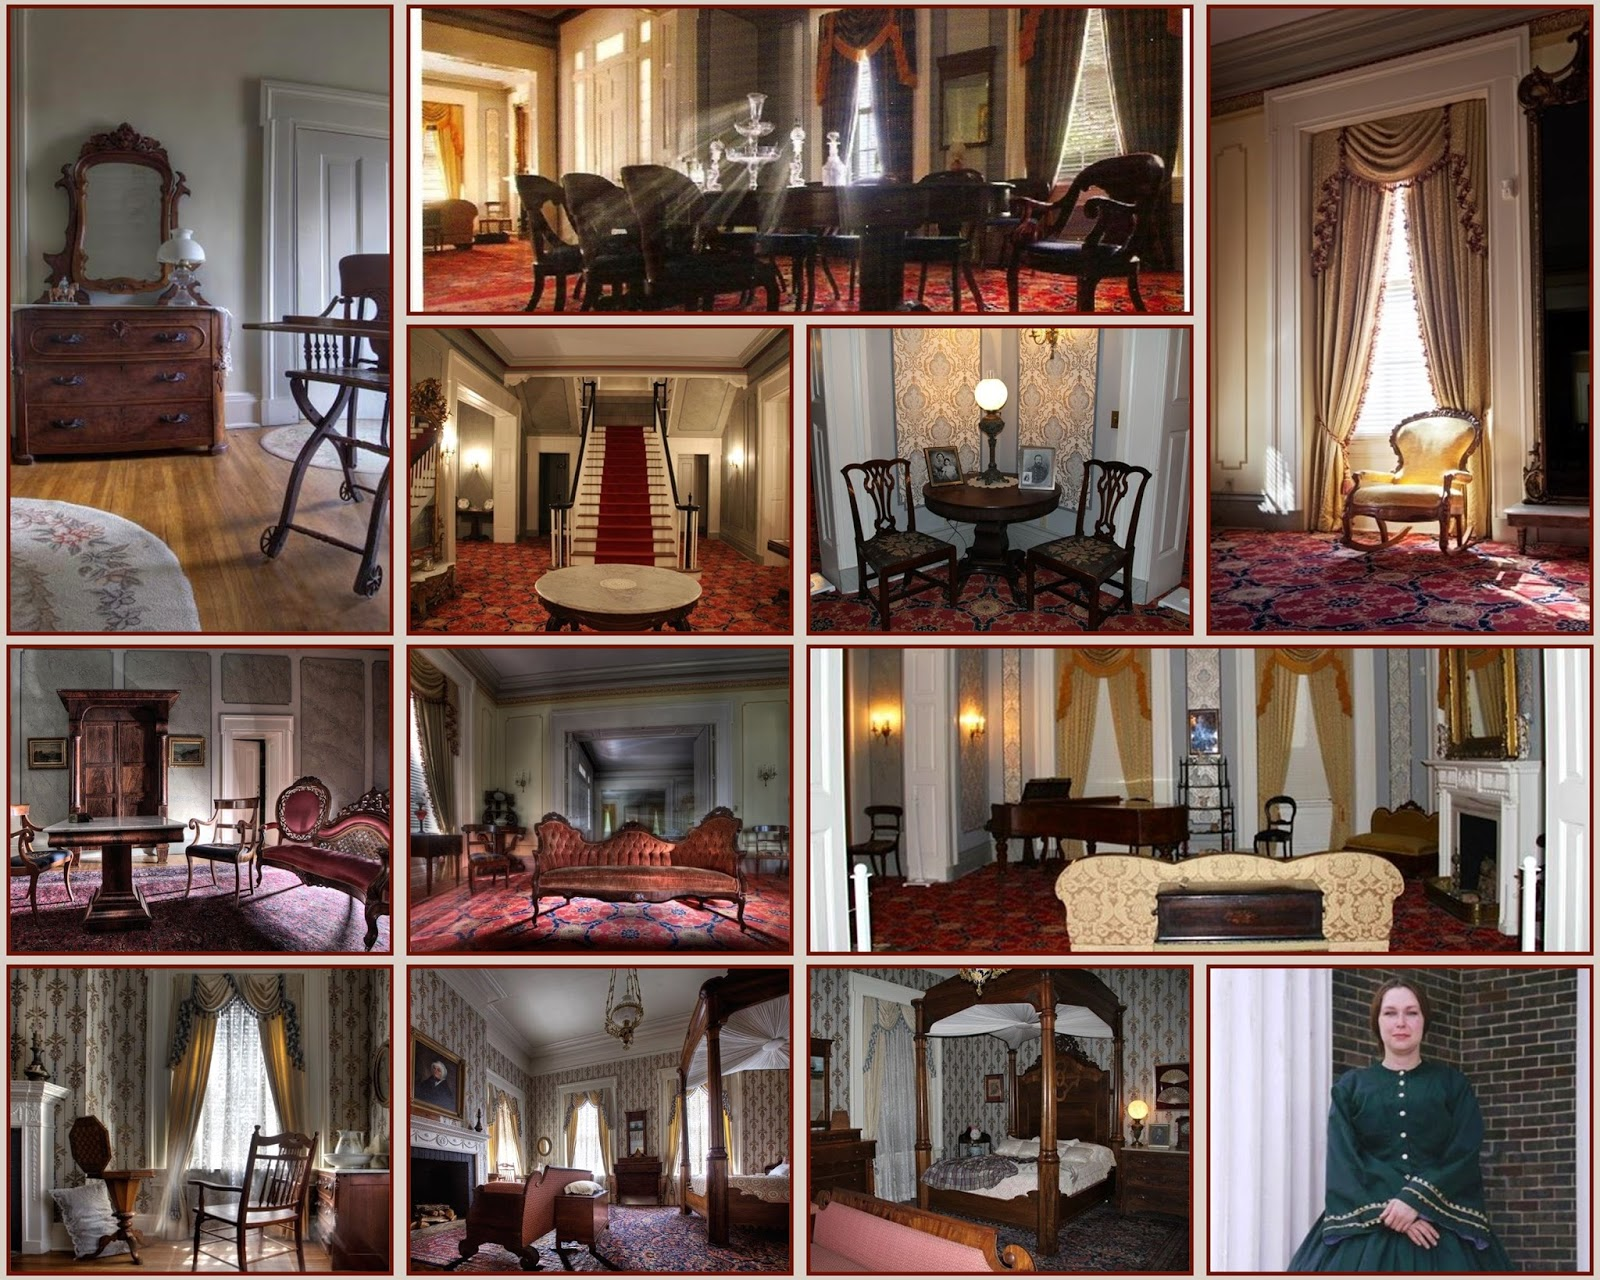 Various images of the numerous rooms within the mansion.